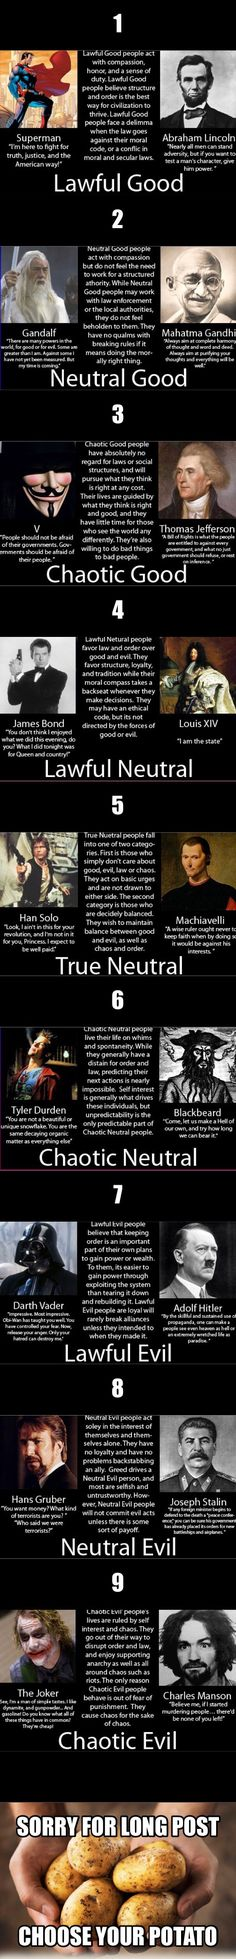 Good-Neutral-Evil, c